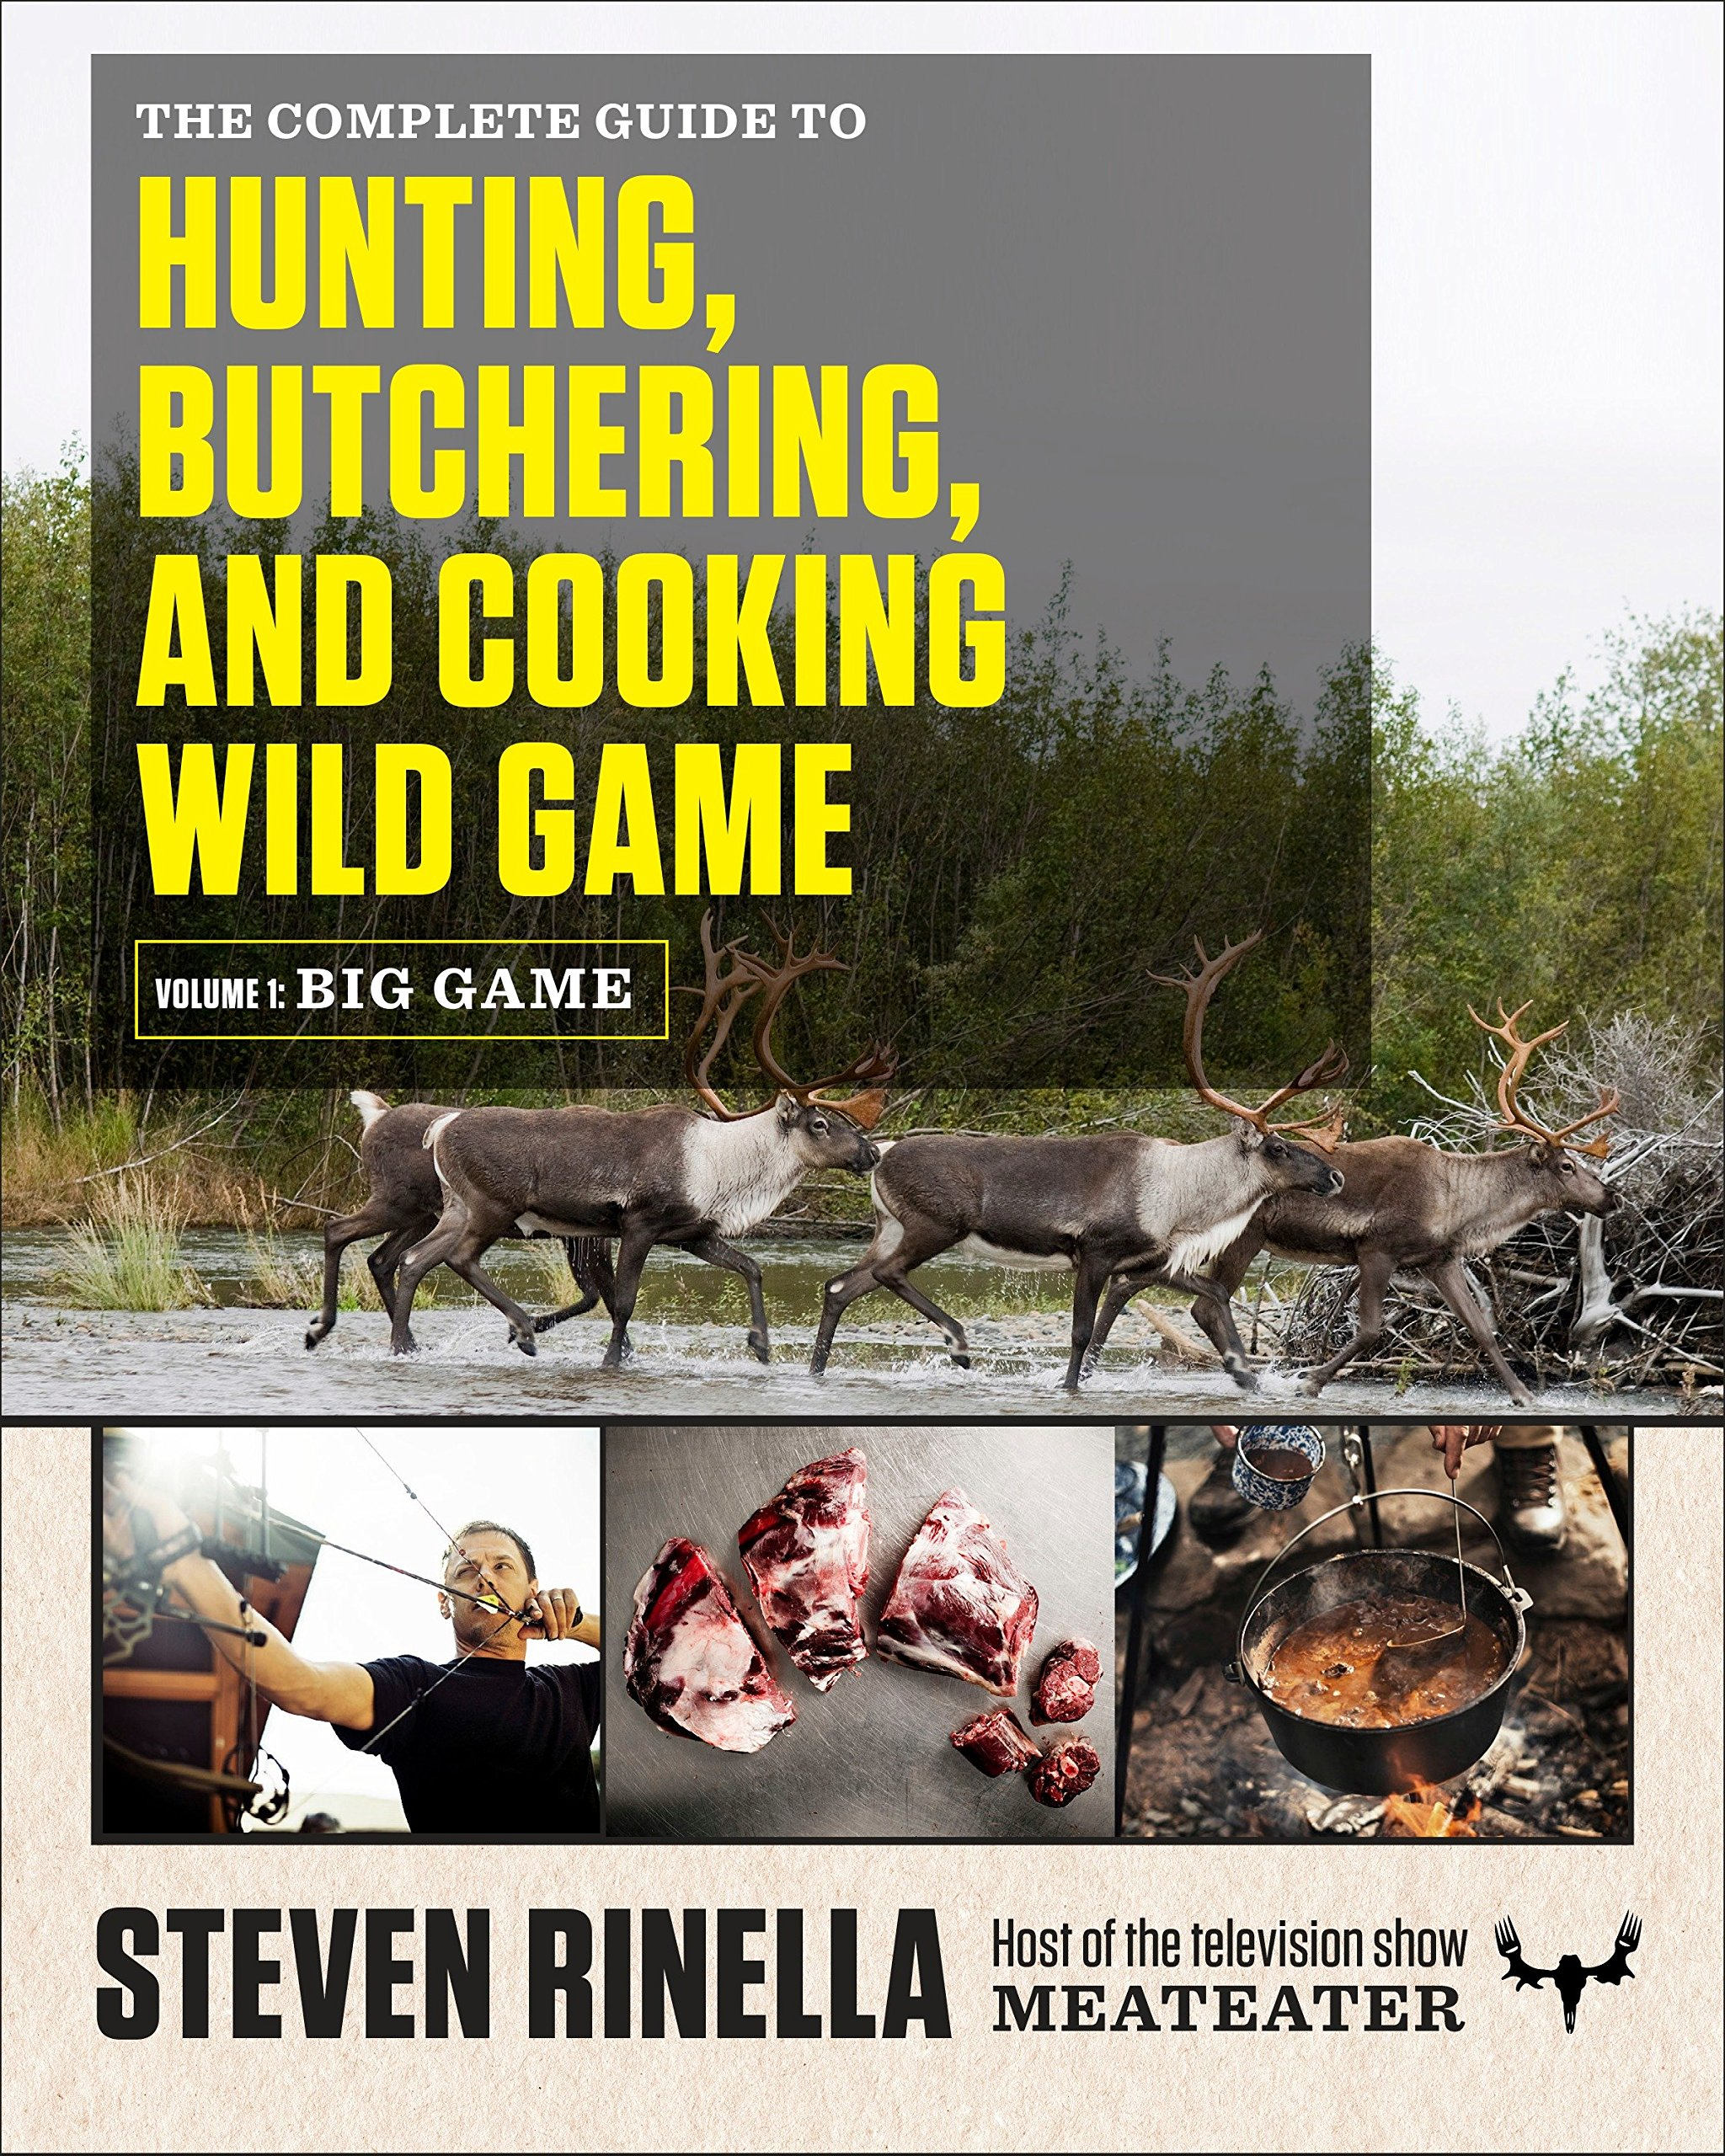 HUNTING BUTCHERING AND COOKING WILD GAME, VOLUME 1: BIG GAME - A comprehensive small-game hunting guide for hunters ranging from first-time novices to seasoned experts, with photography by renowned outdoor photographer John HafnerSteven Rinella was raised in a hunting family and has been pursuing wild game his entire life. In this first-ever complete guide to hunting—from hunting wild game to butchering and cooking it—the host of the popular hunting show MeatEater shares his own expertise with us, and imparts strategies and tactics from many of the most experienced hunters in the United States as well.Purchase on Amazon